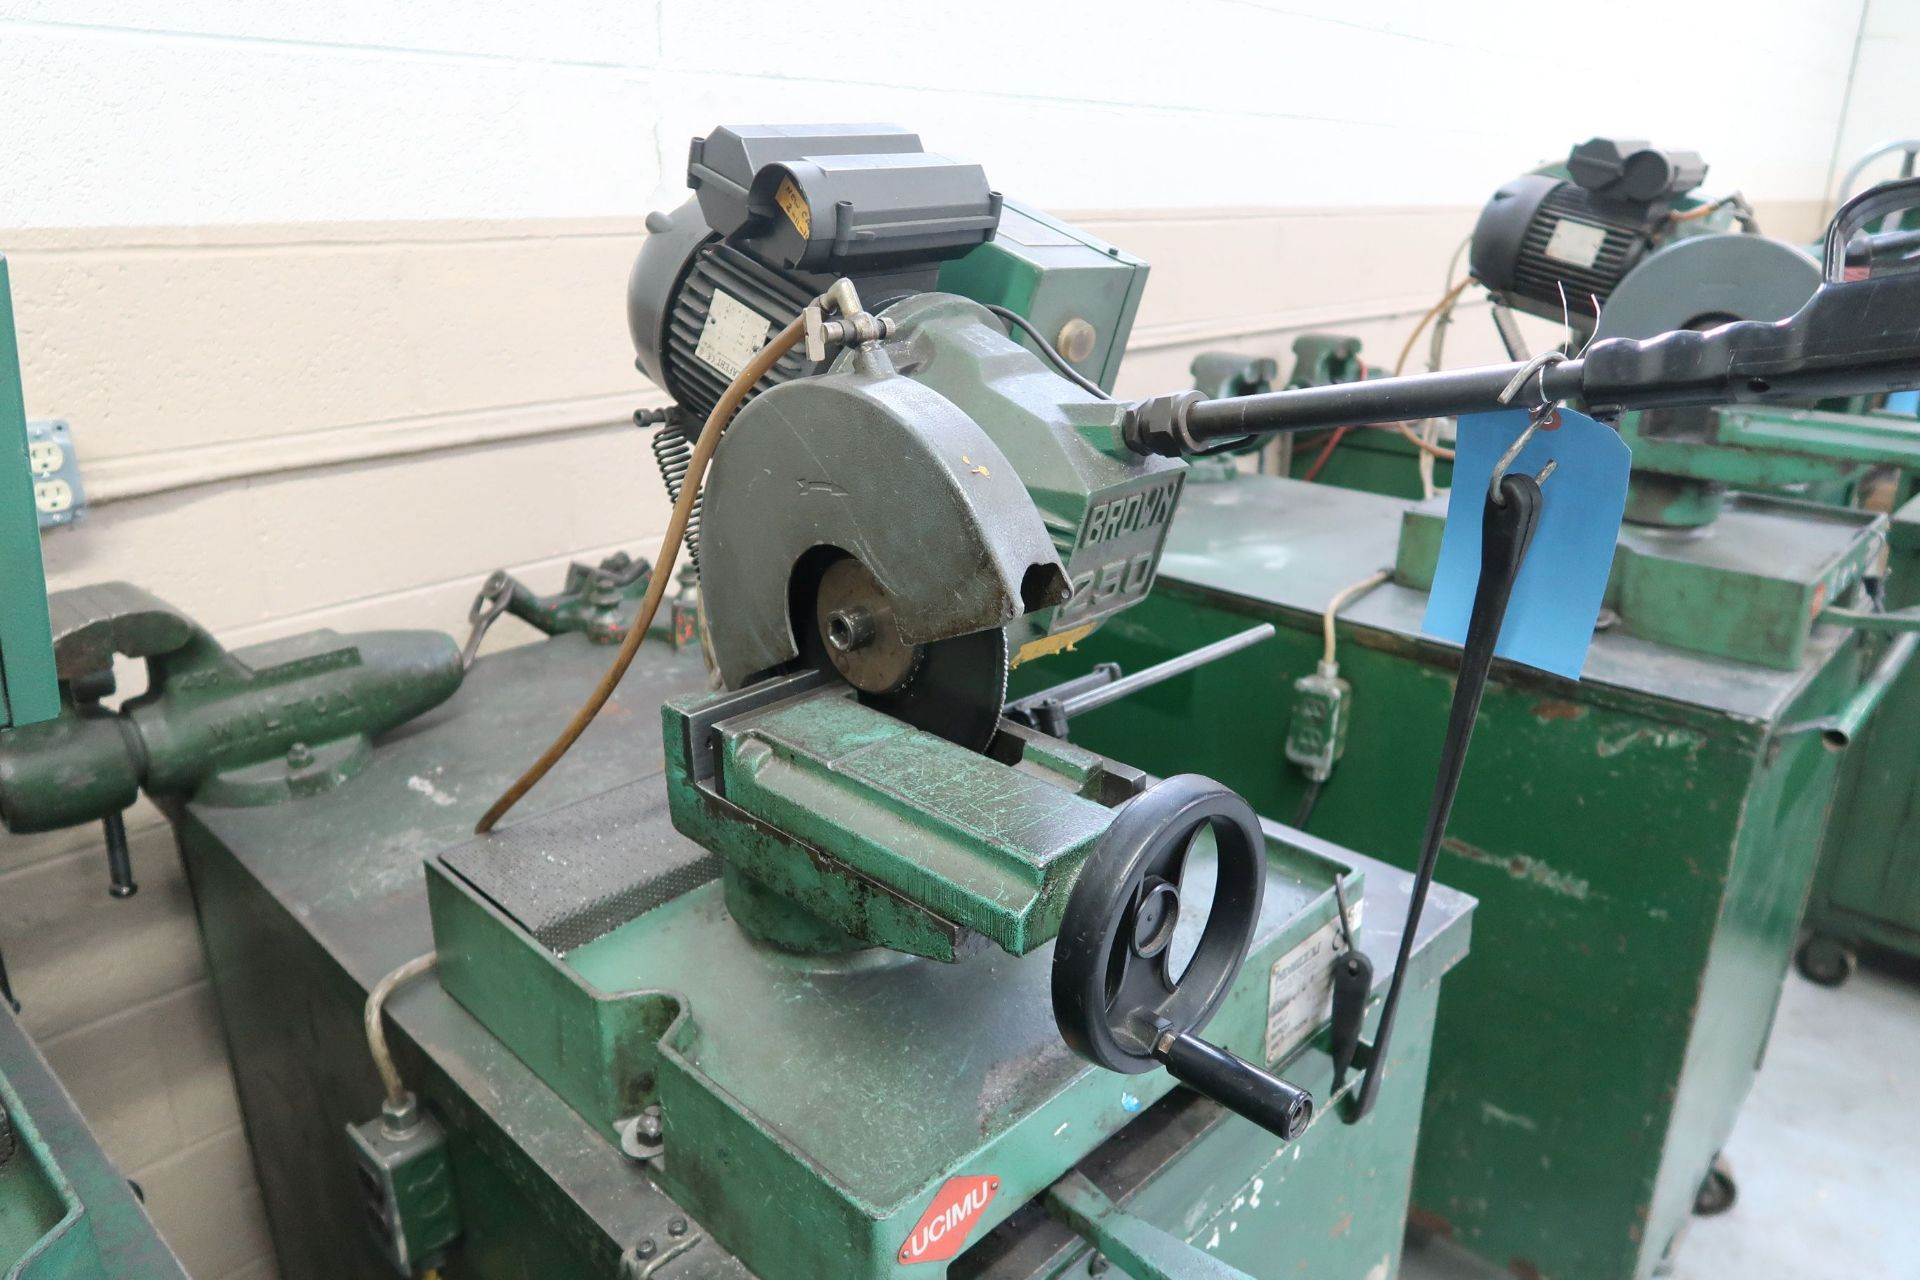 BROWN MODEL 250 TABLE MOUNTED SAW; S/N 034441, MOUNTED ON PORTABLE JOBBOX WITH 4-1/2 BENCH VISE - Image 3 of 5